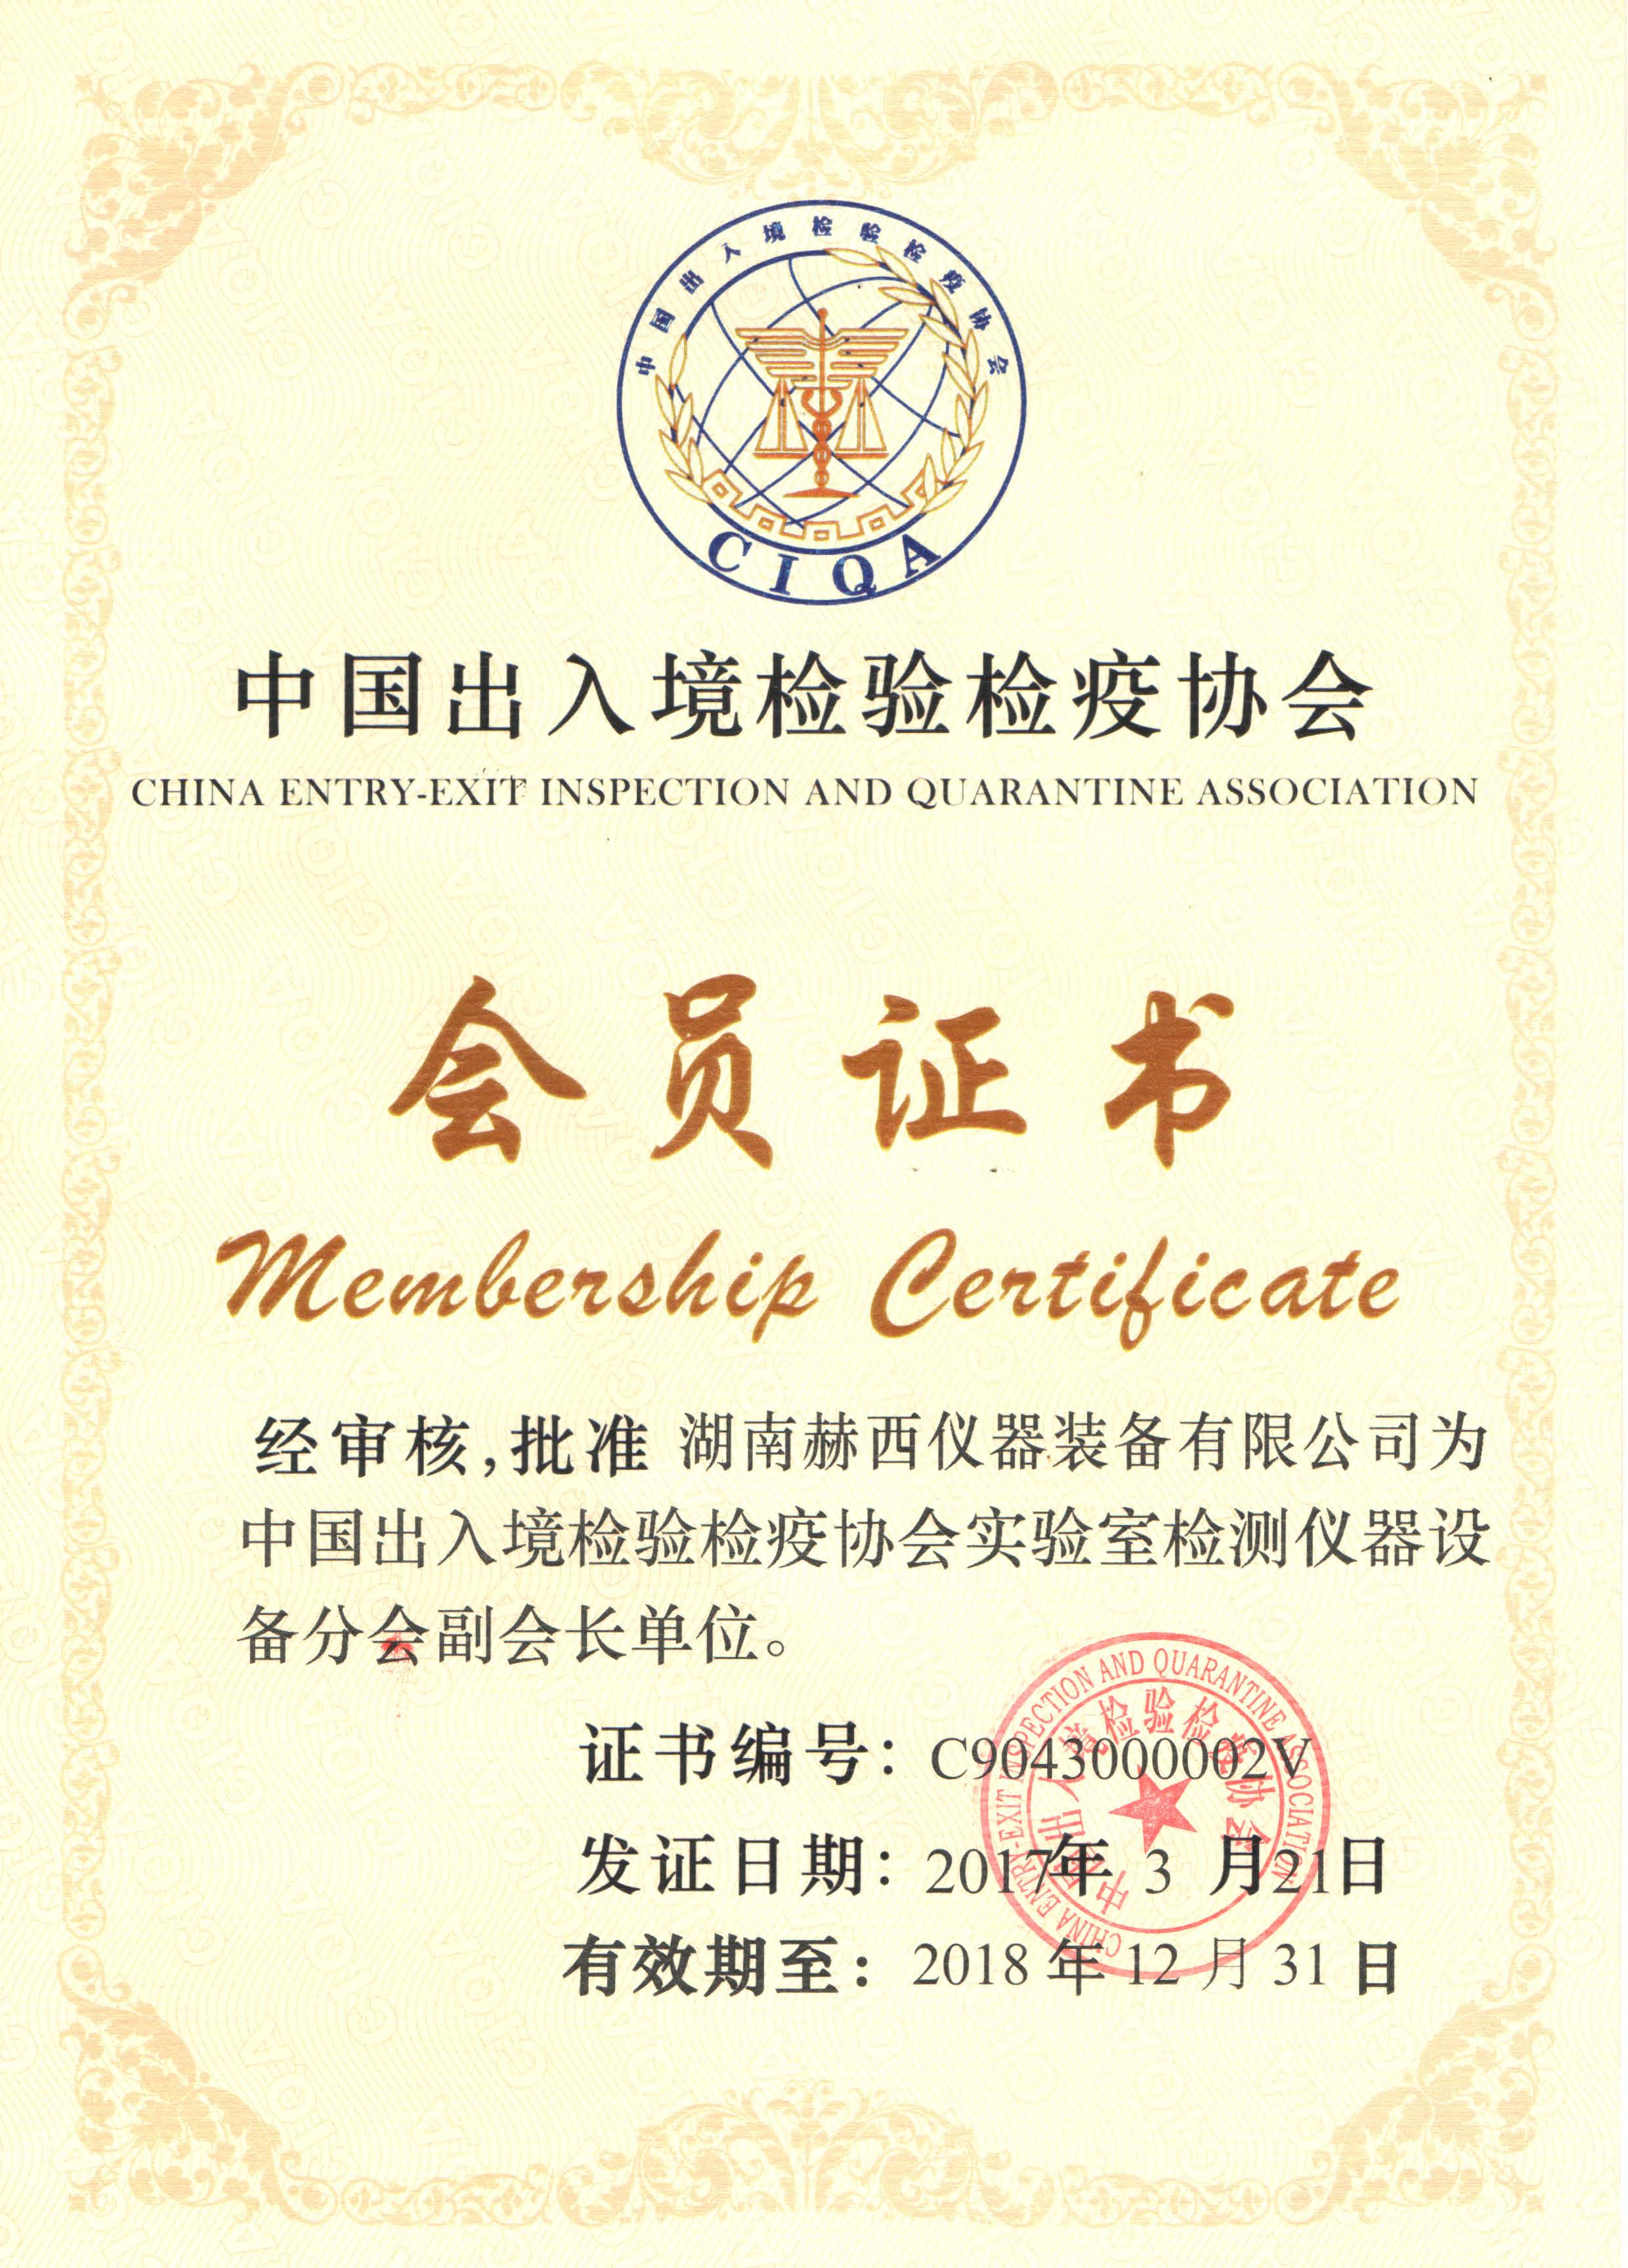 certificate of China entry and exit inspection and Quarantine Association